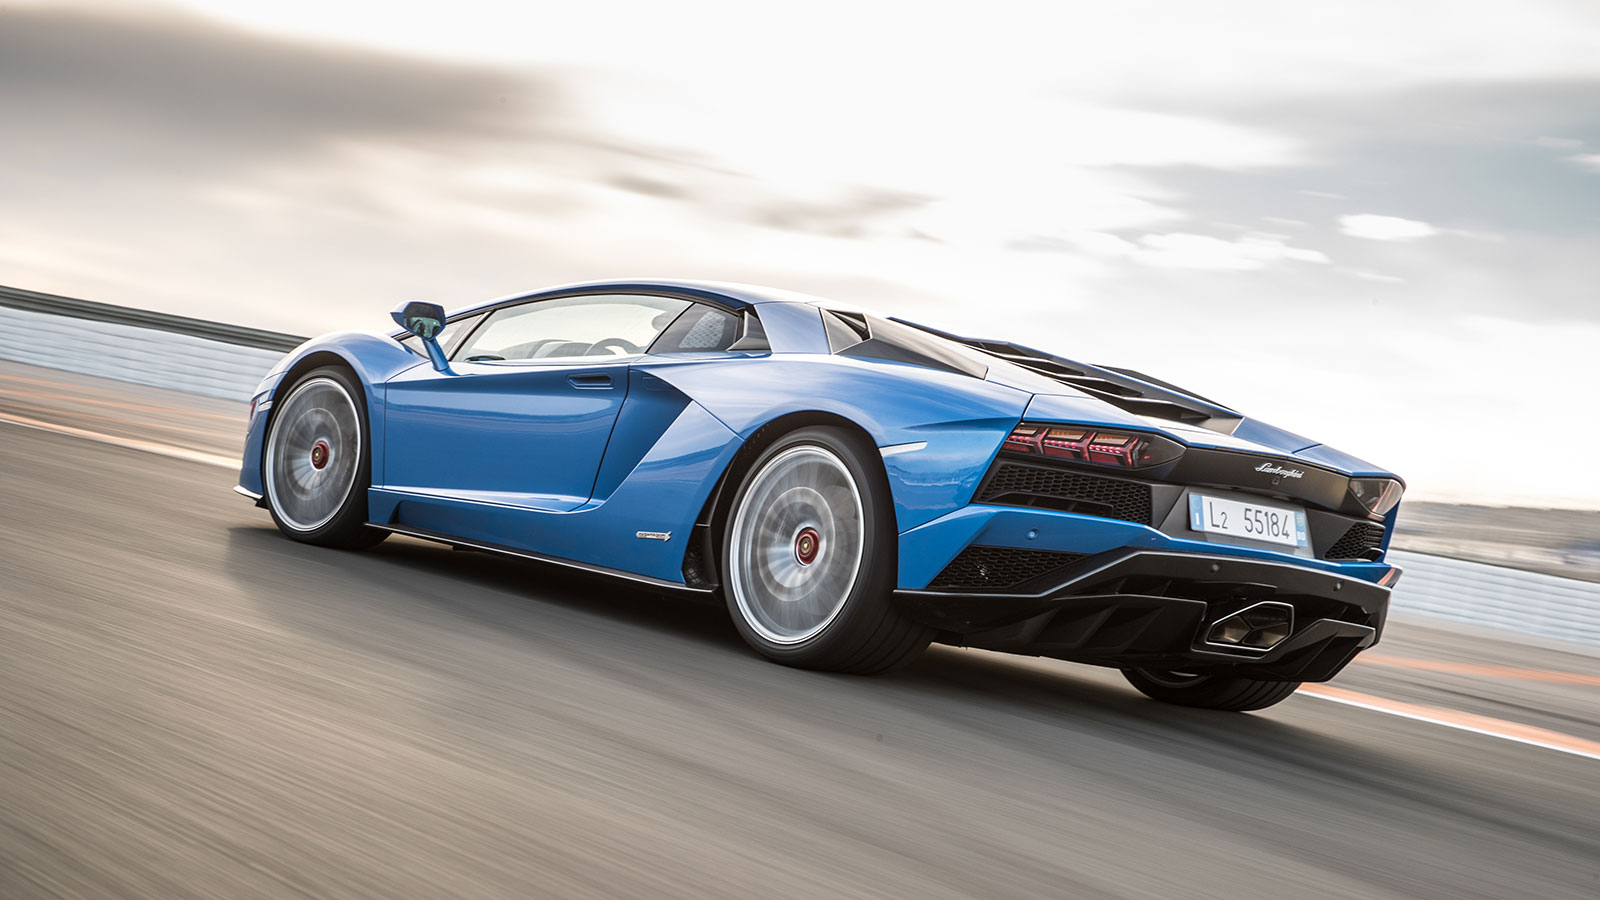 Lamborghini Aventador S Coupe - The Icon Reborn image 22